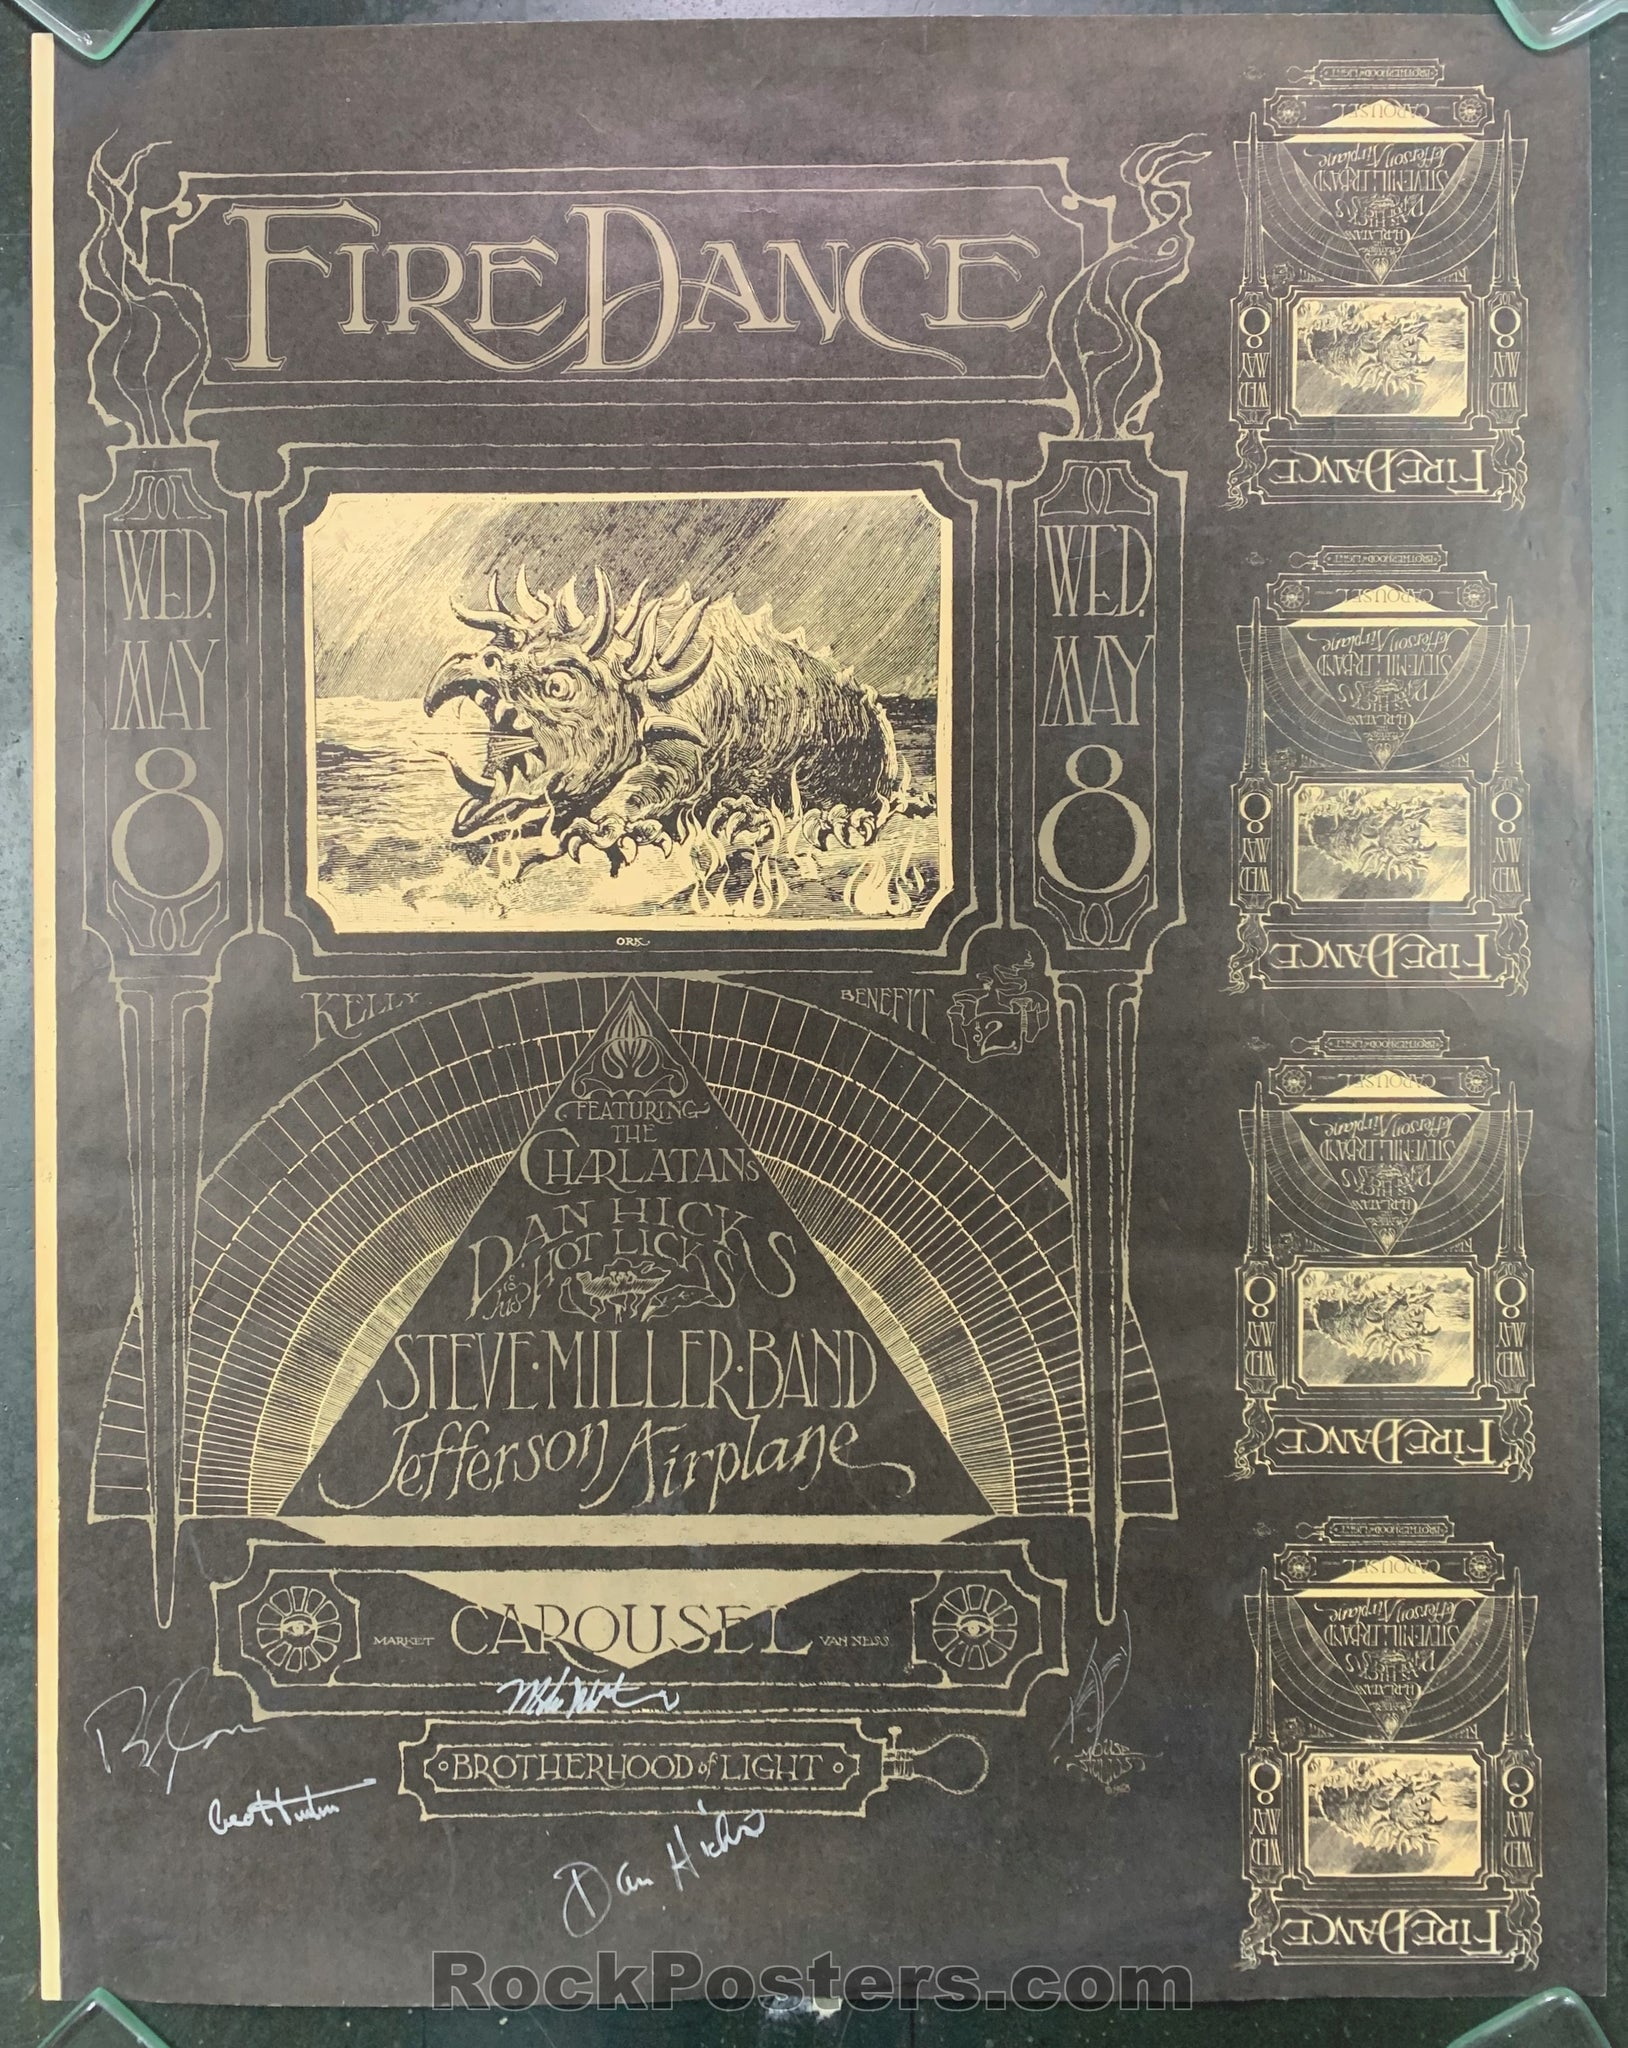 AUCTION -  AOR 2.173 -  Fire  Dance 1968 Band & Kelley Signed Poster - Carousel Ballroom - Condition - Very Good